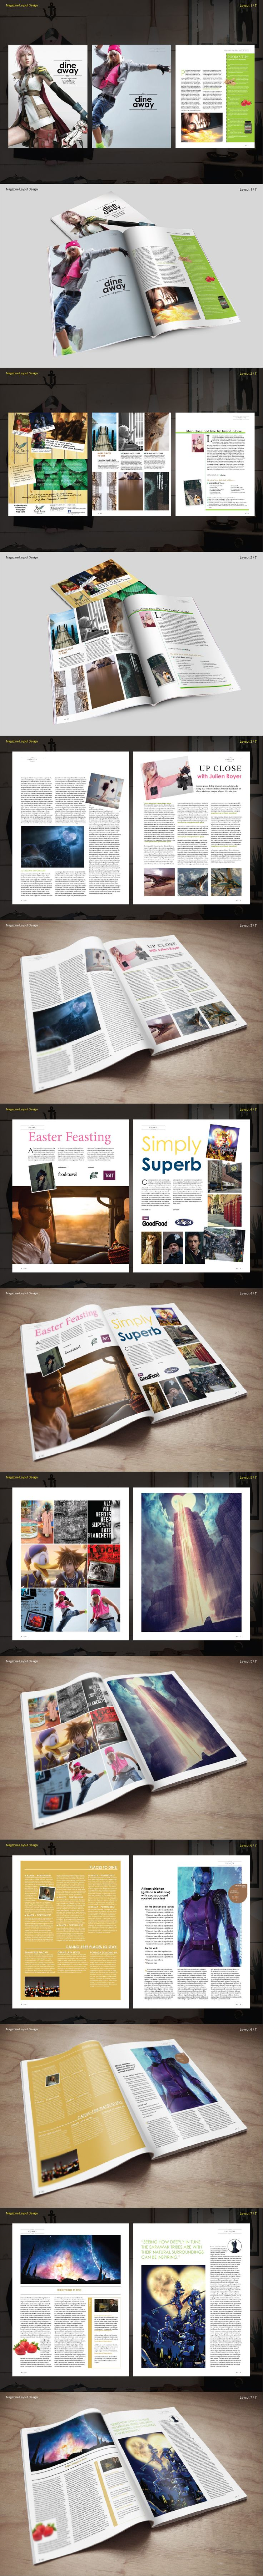 Magazine Layout #Photoshop #enjoy #fun #design #book #OMTA #ohmyacademy